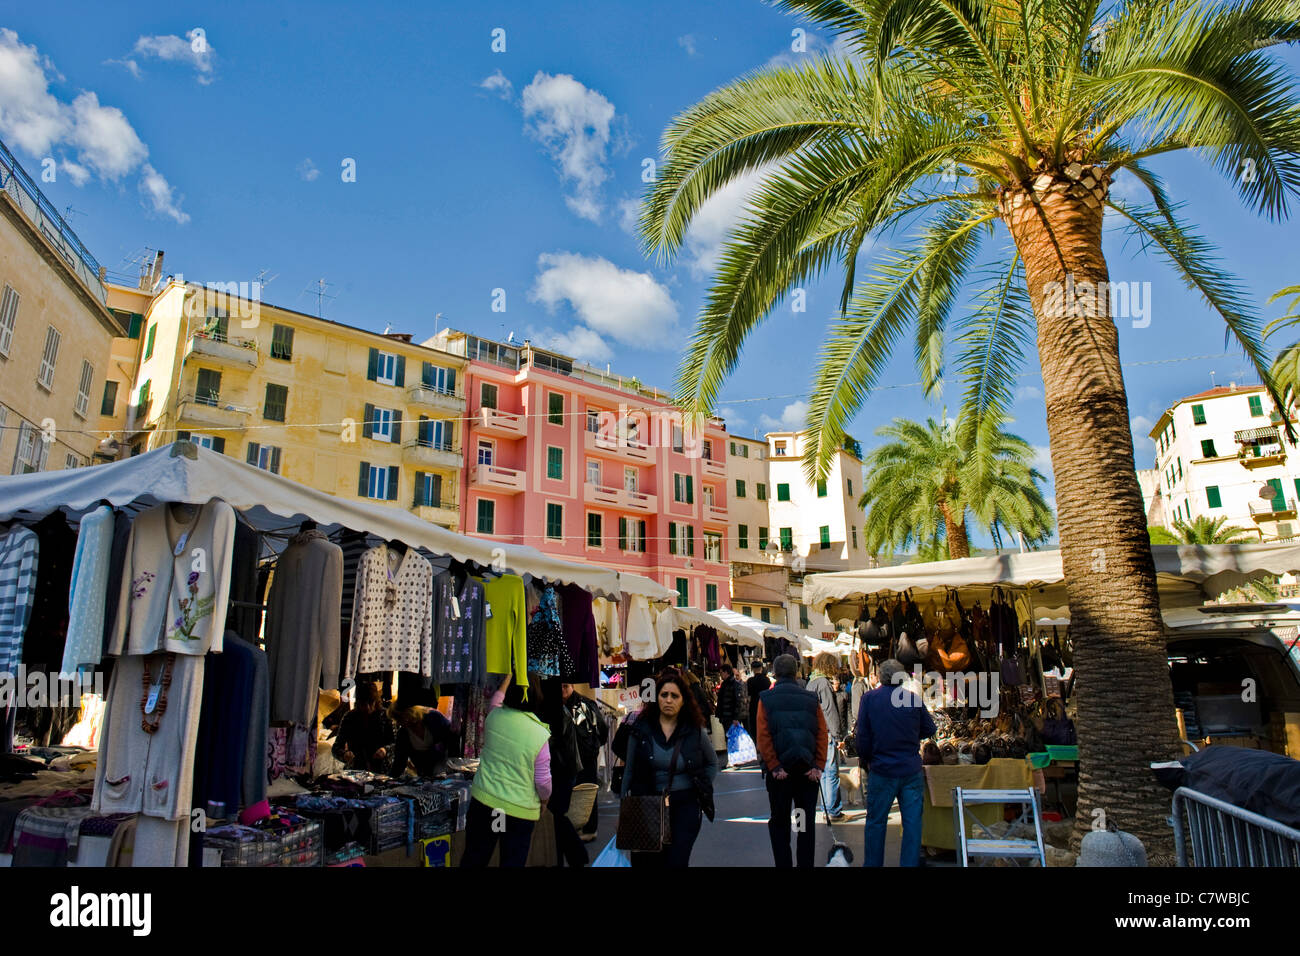 l 39 italie ligurie sanremo le jour du march banque d 39 images photo stock 39281268 alamy. Black Bedroom Furniture Sets. Home Design Ideas